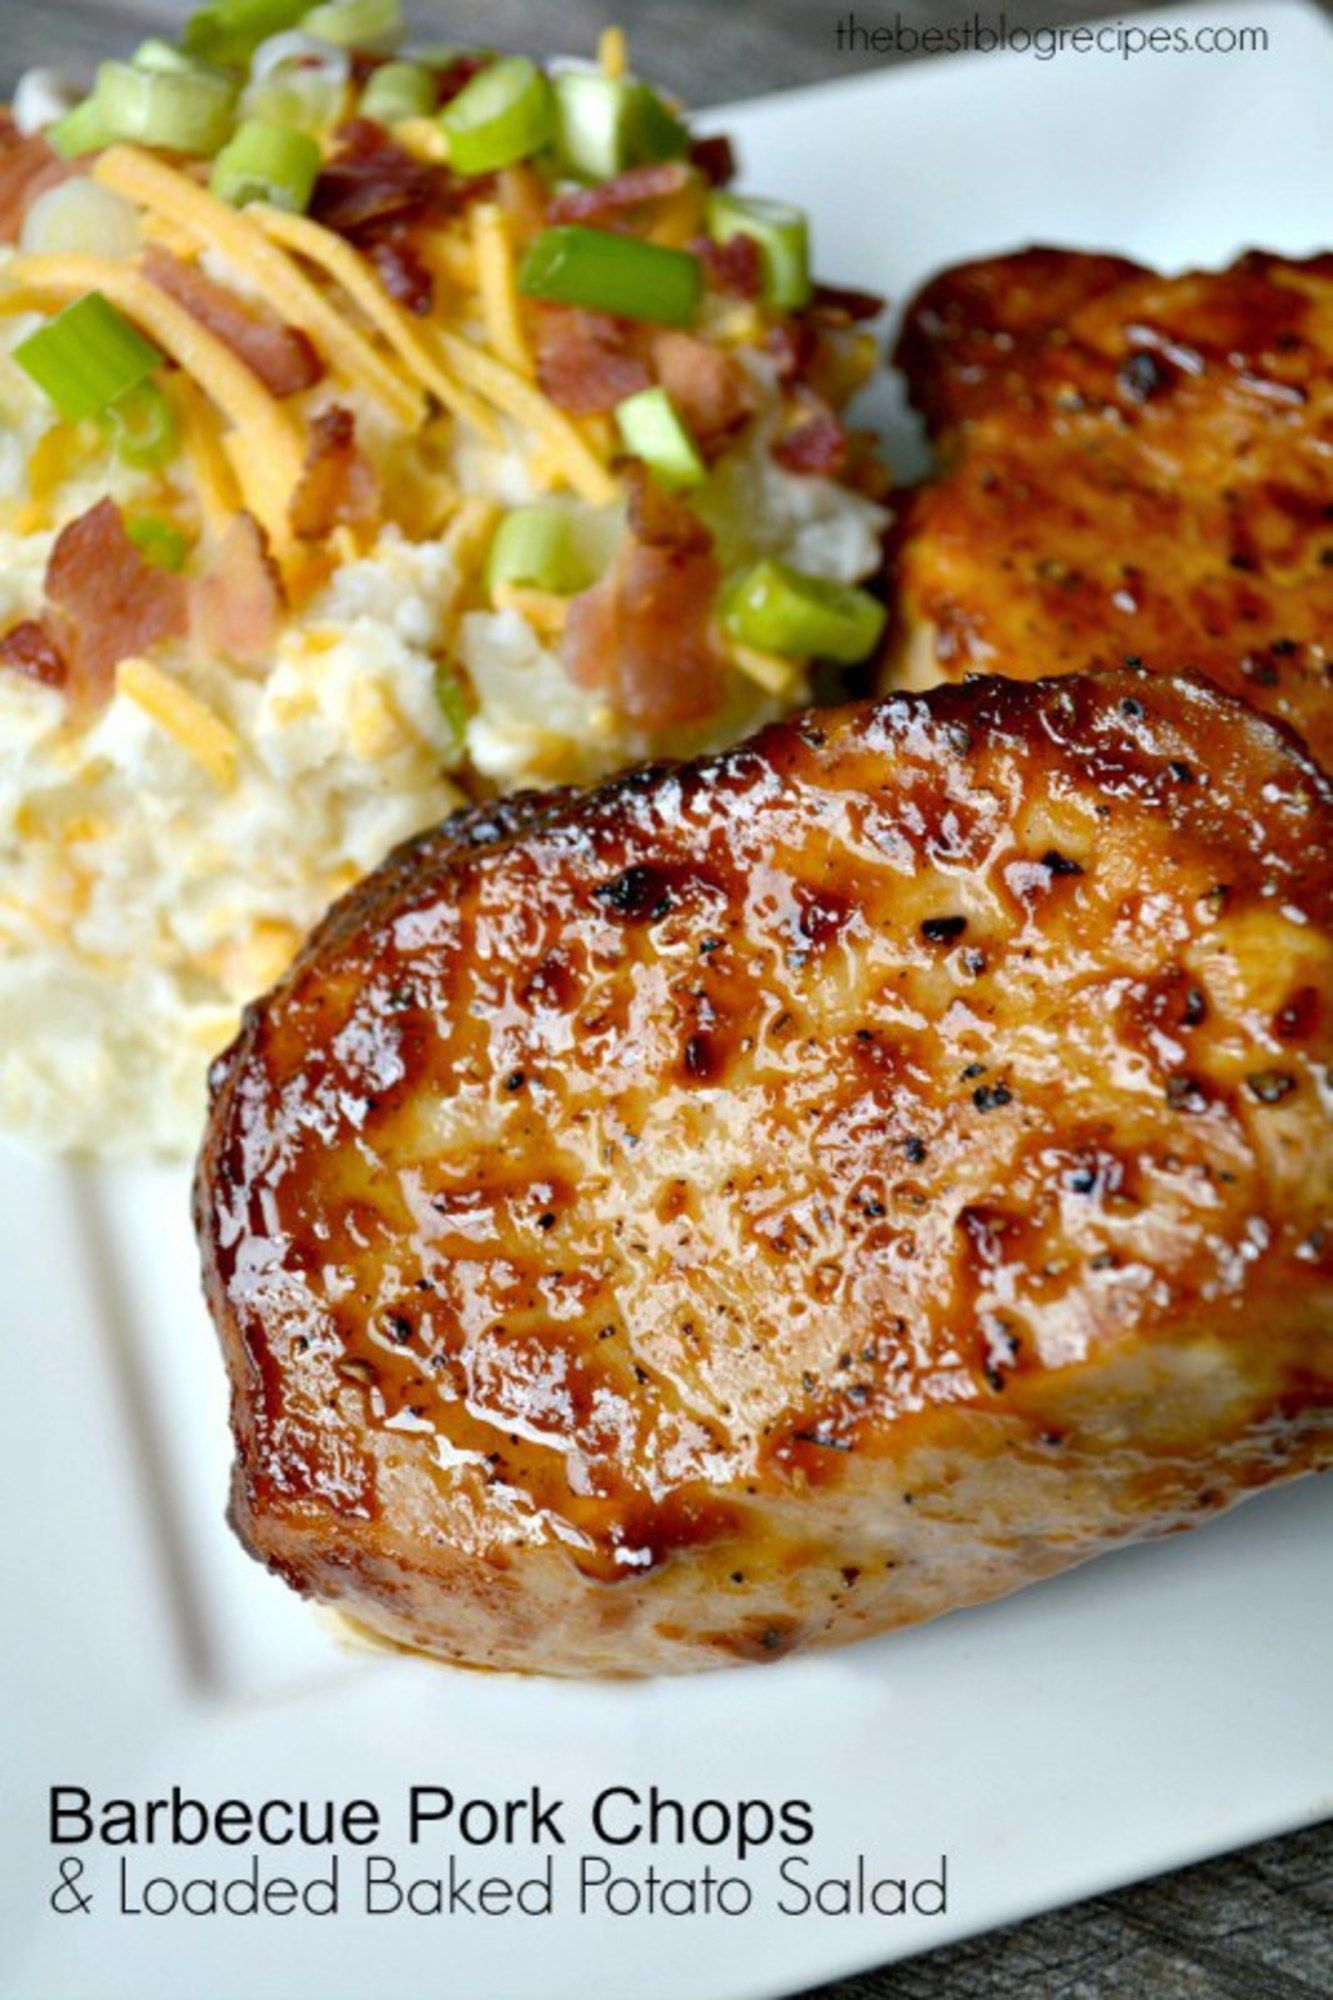 Pan Seared Barbecue Pork Chops Recipe Pork Recipes Bbq Pork Chops Pork Rib Recipes